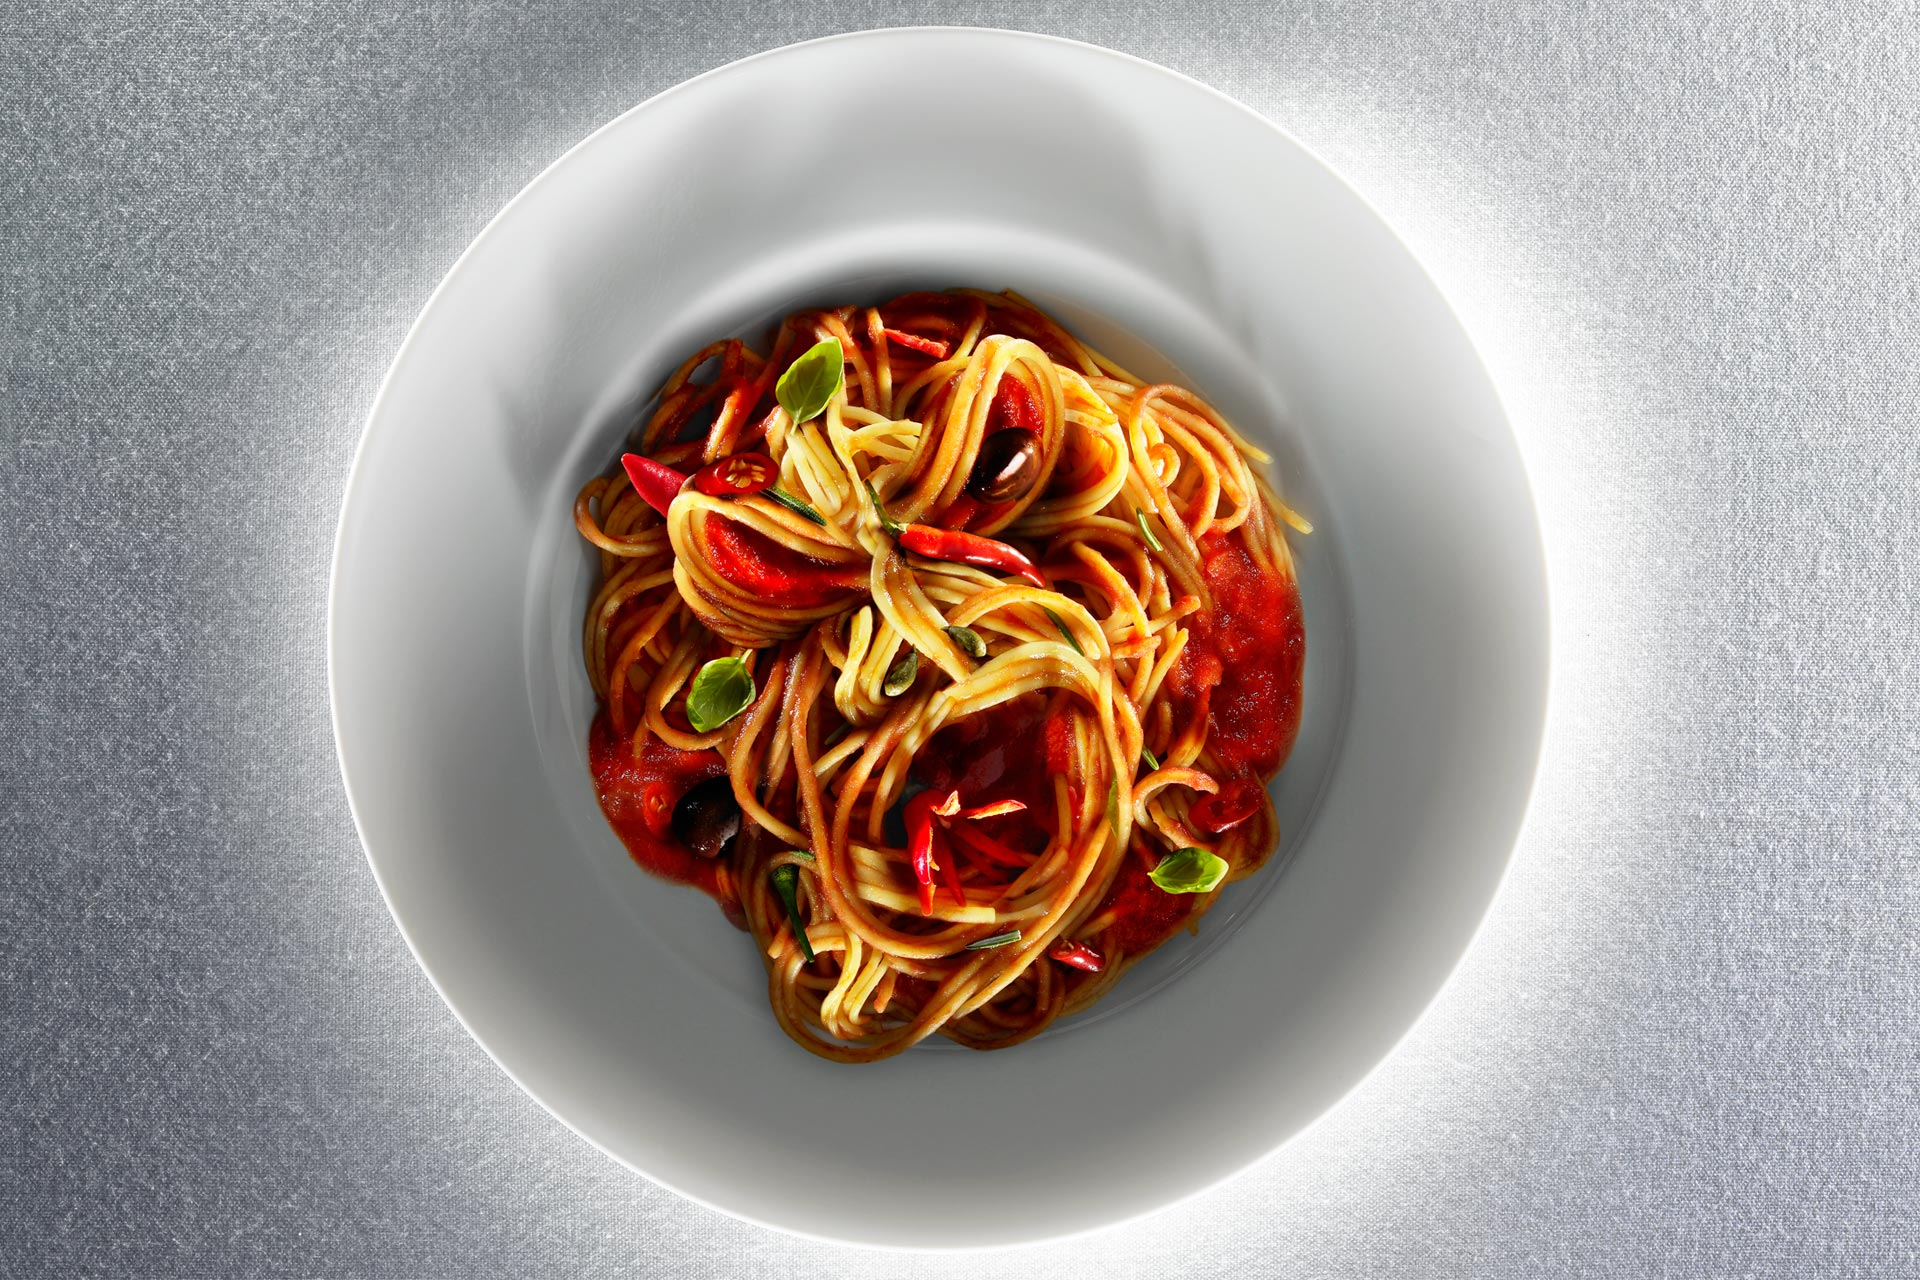 Sabine-Scheer-commercial-food-photography-spaghetti-monster